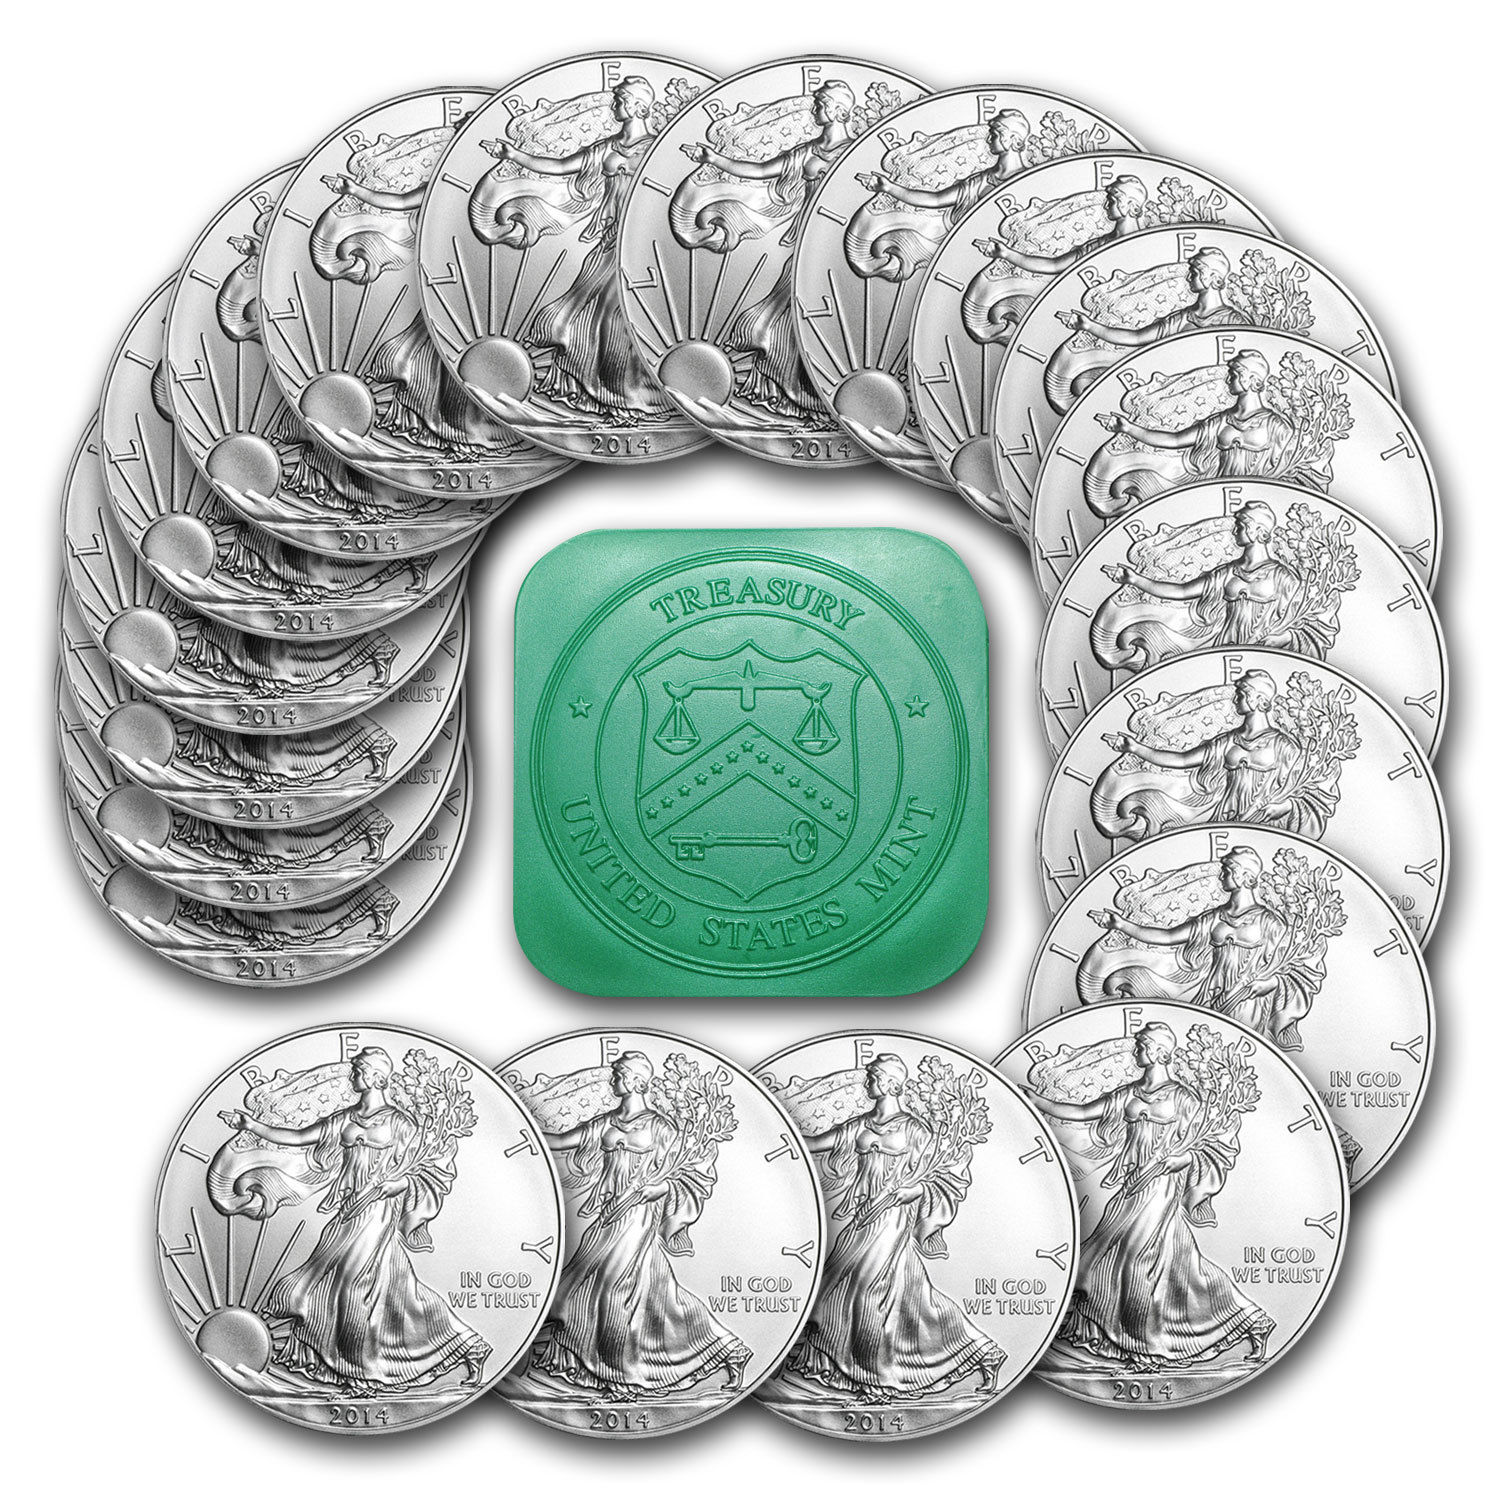 $379.99 + Free Shipping 2014 1 oz Silver American Eagle Coin Lots of 20 Coins SKU #79747